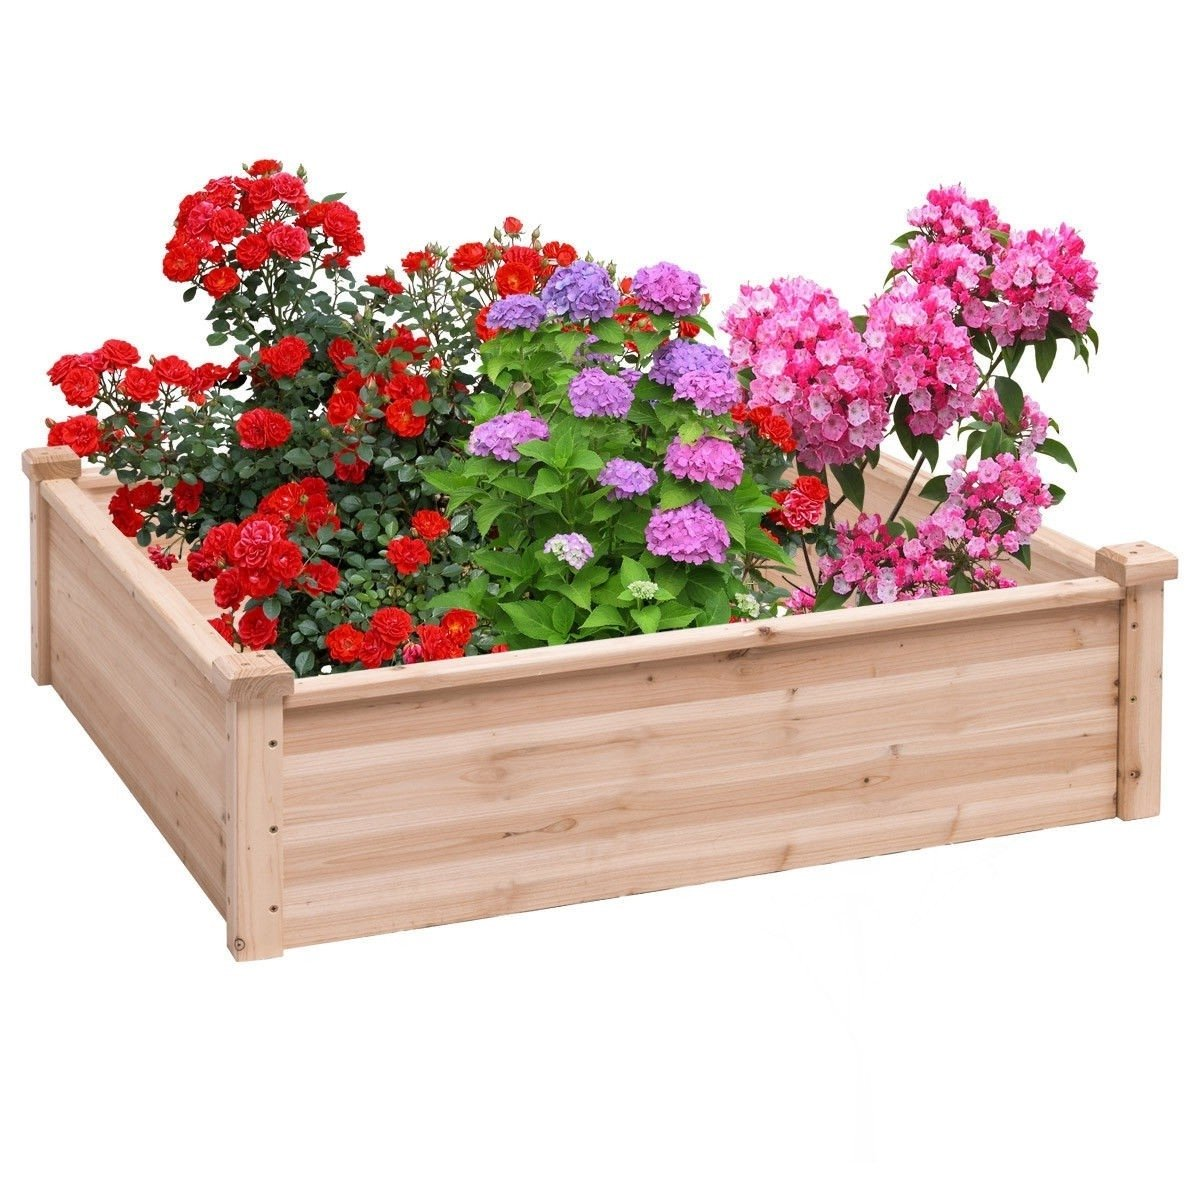 Solid Fir Wood 3.3 ft x 3.3 ft Raised Garden Bed Planter Box